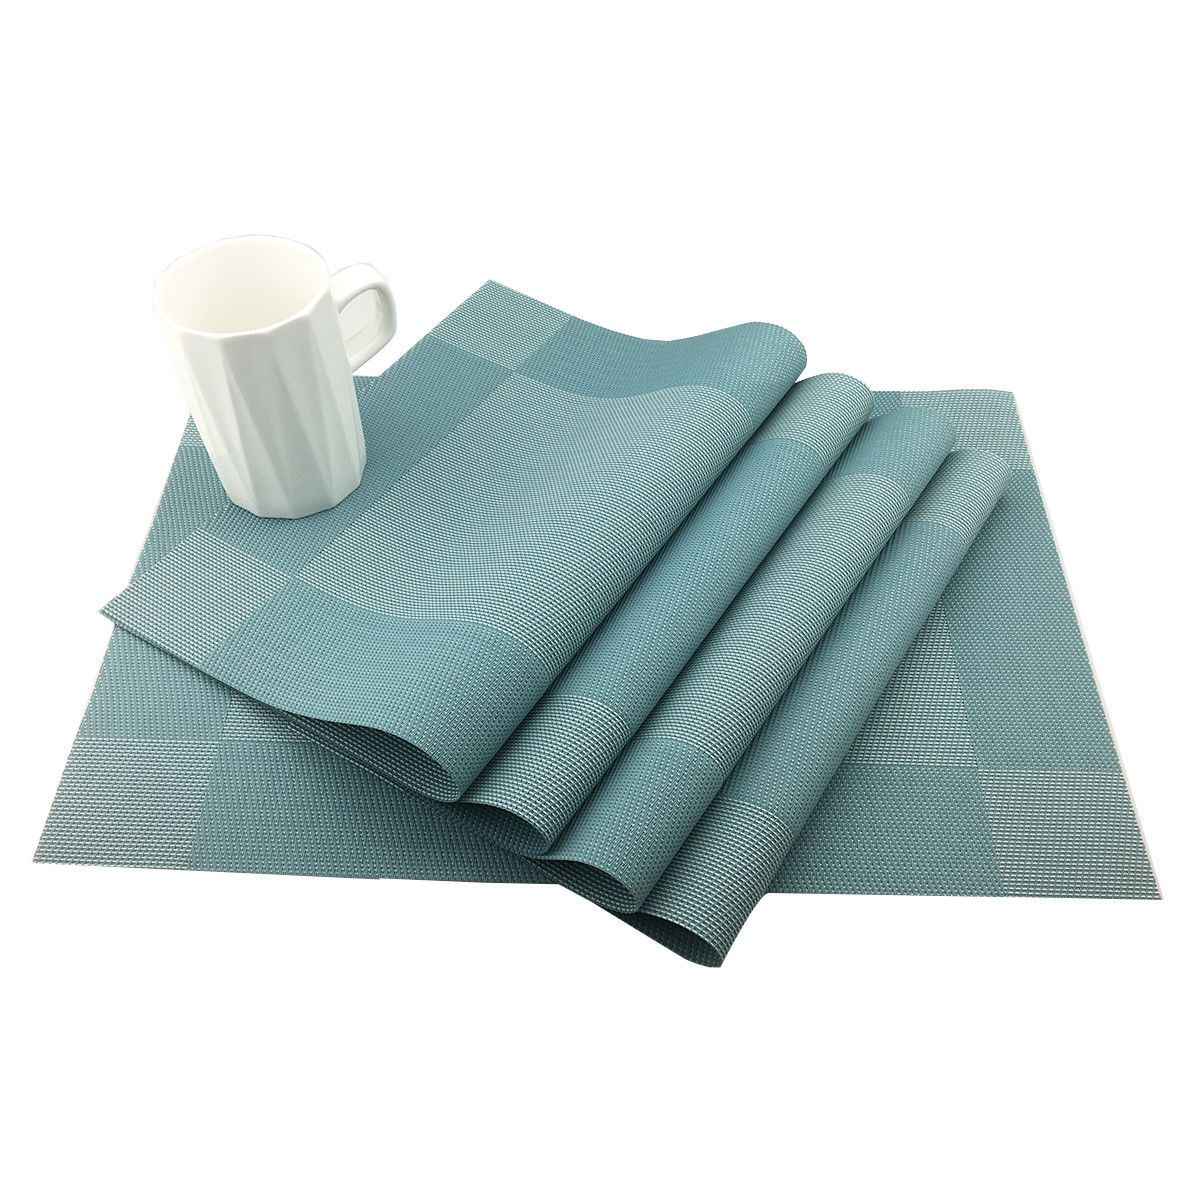 Set Of 4 Pvc Blue Beige Brown Place Mat Dining Table Mats Set Table Bowl Pad Napkin Dining Table Tray Mat Coasters Kids Tray Table Table Mats Dining Table